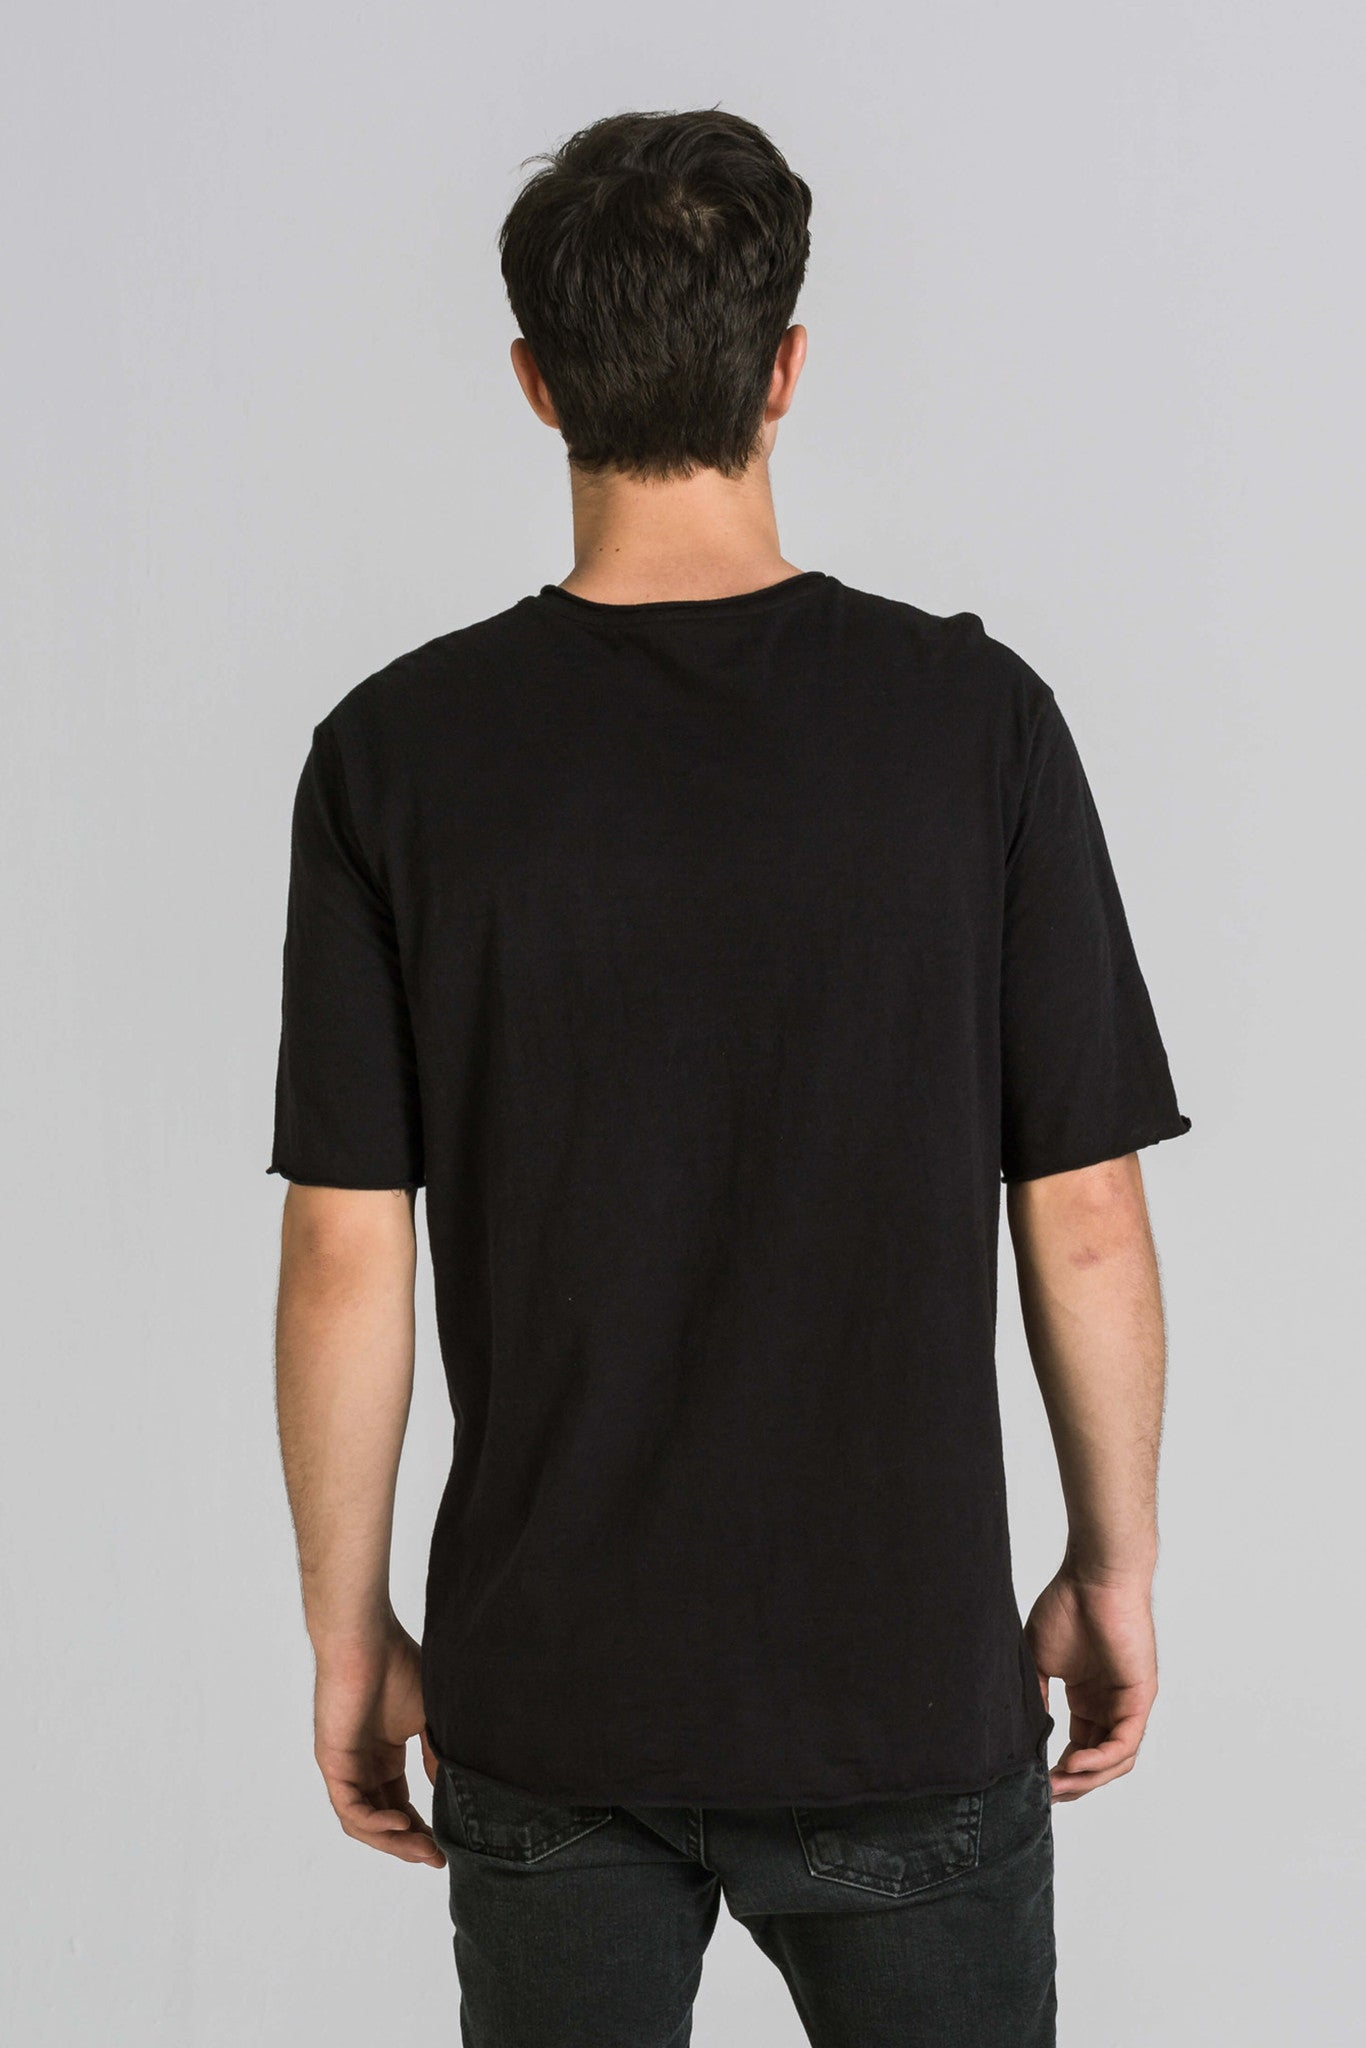 ACCURATE BLACK TEE